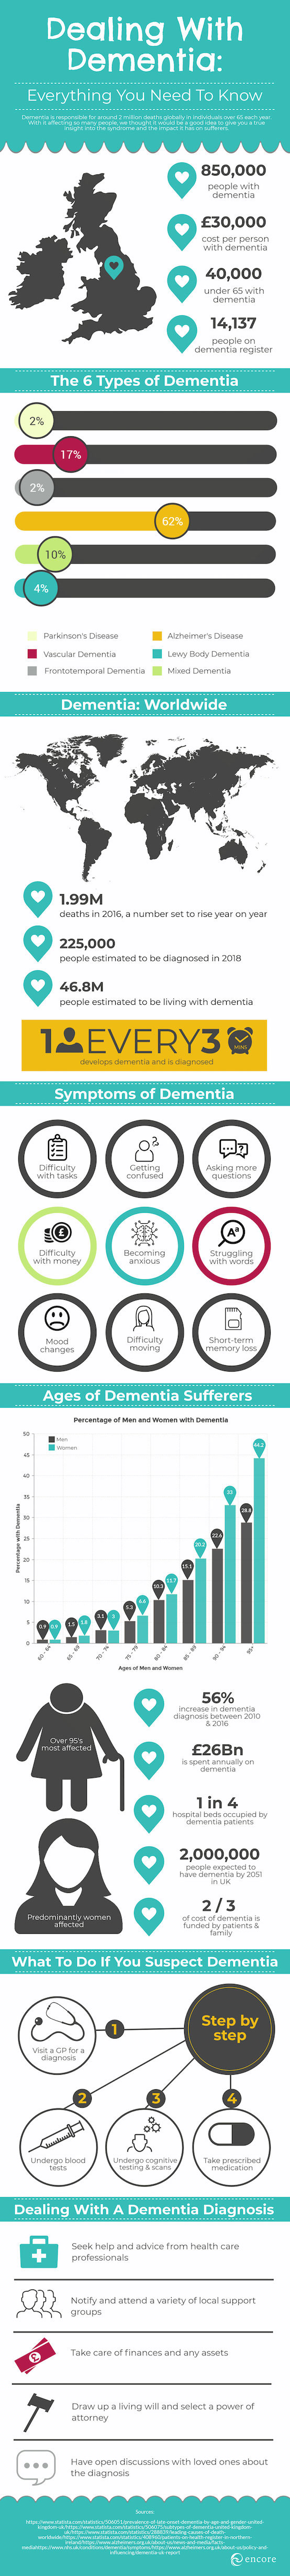 https://encorecarehomes.co.uk/dealing-with-dementia-infographic/